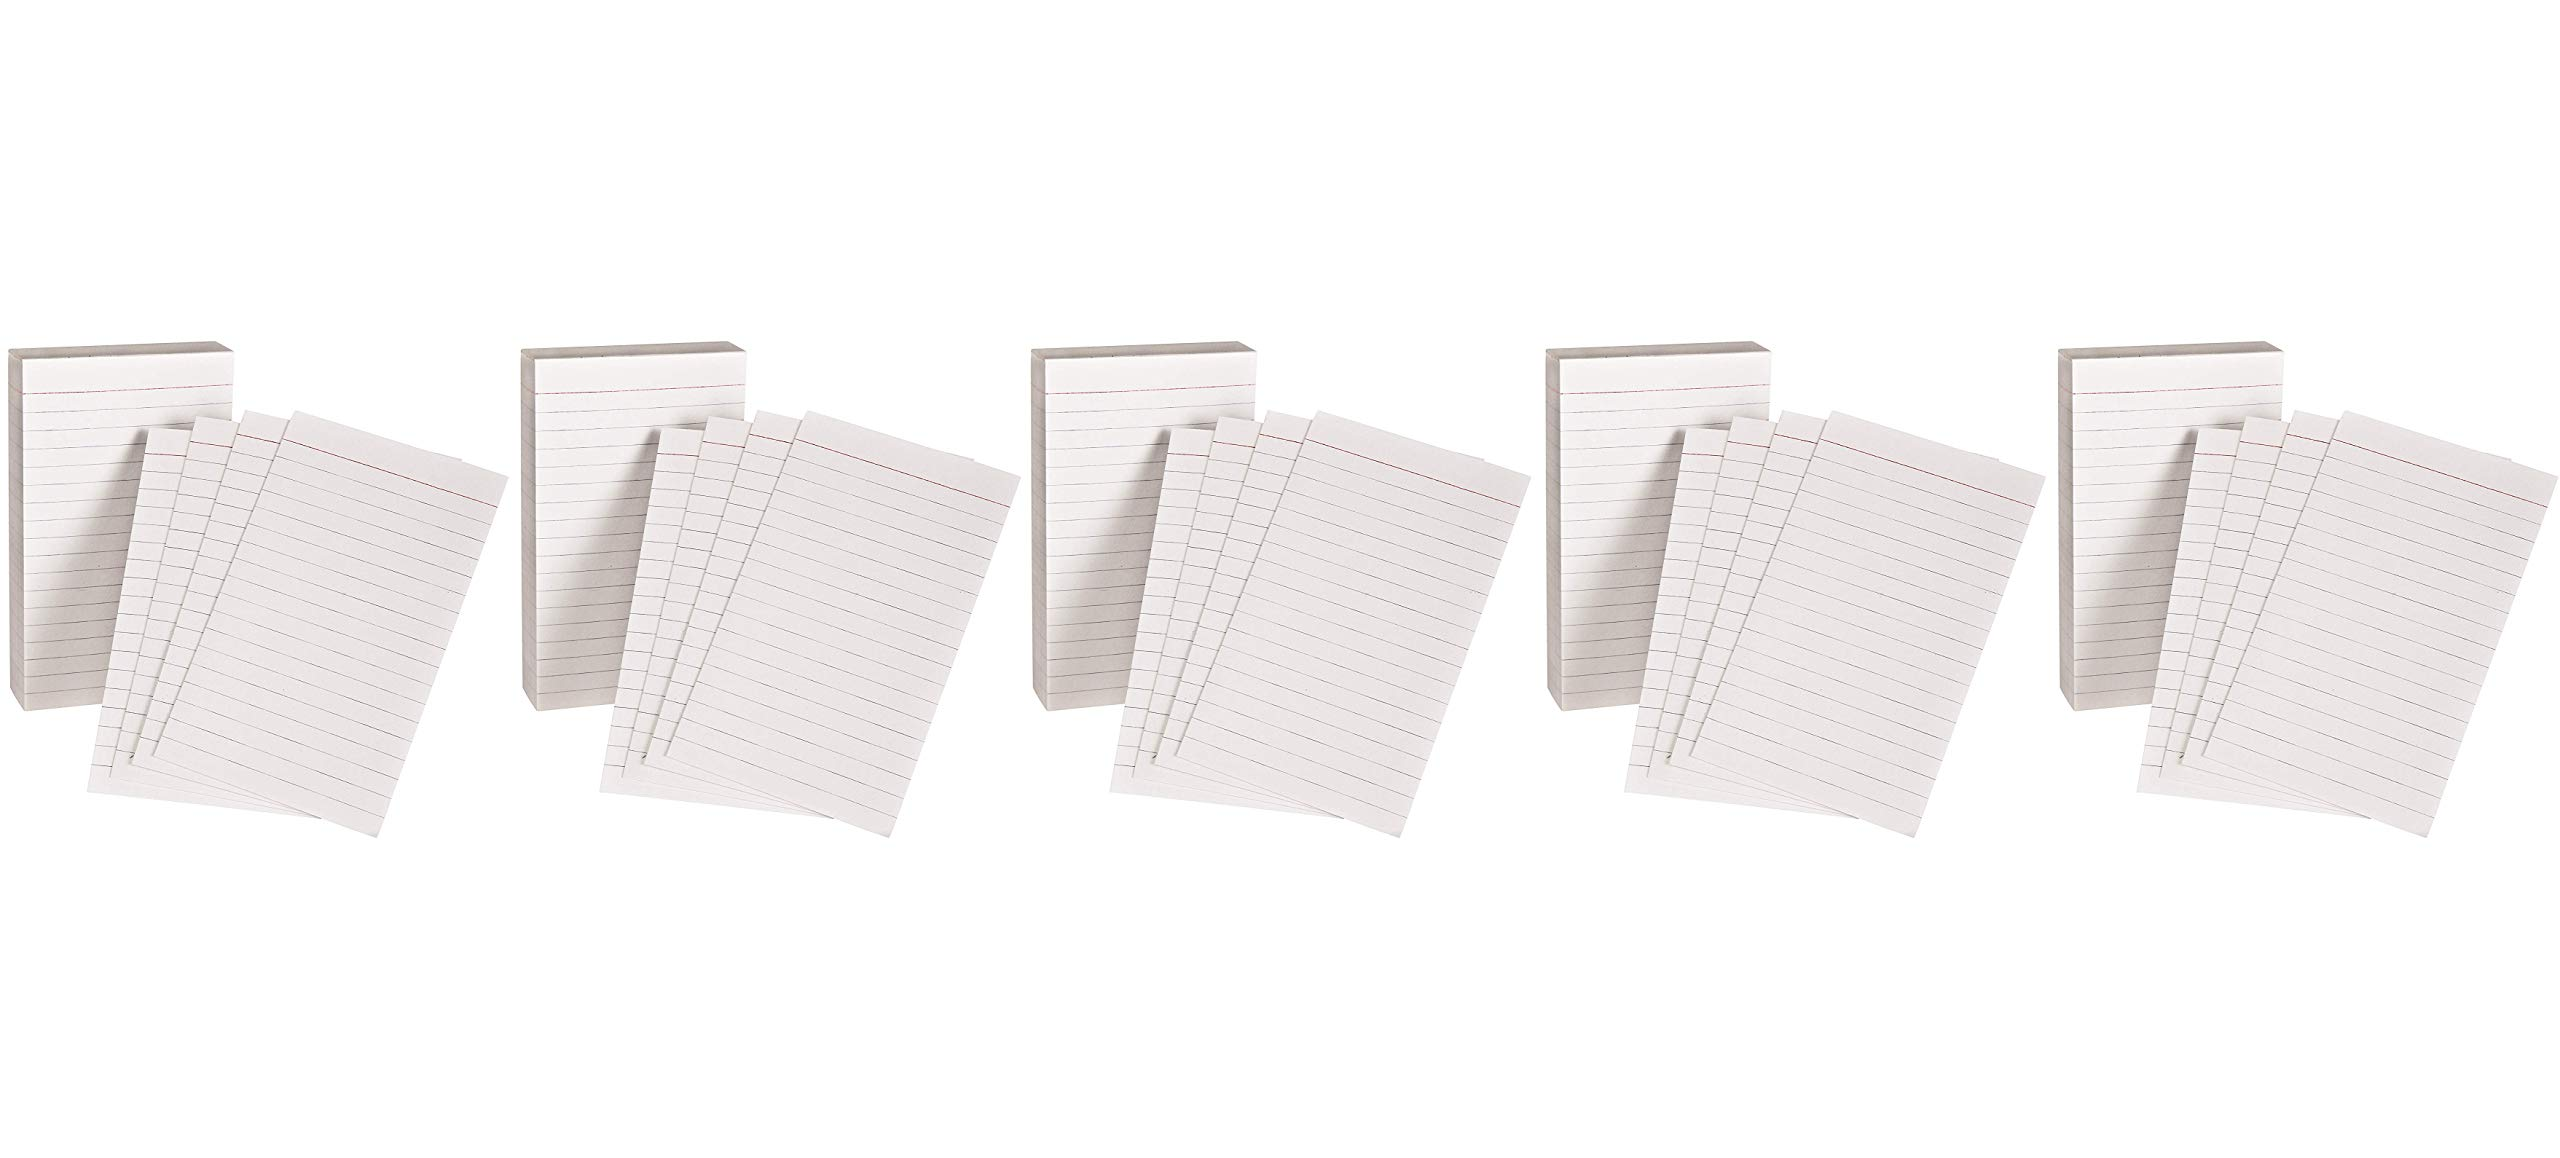 Oxford Padded Memo Ruled Index Cards, White, 5 x 3 Inches, 100 per Pack (006351) (5)